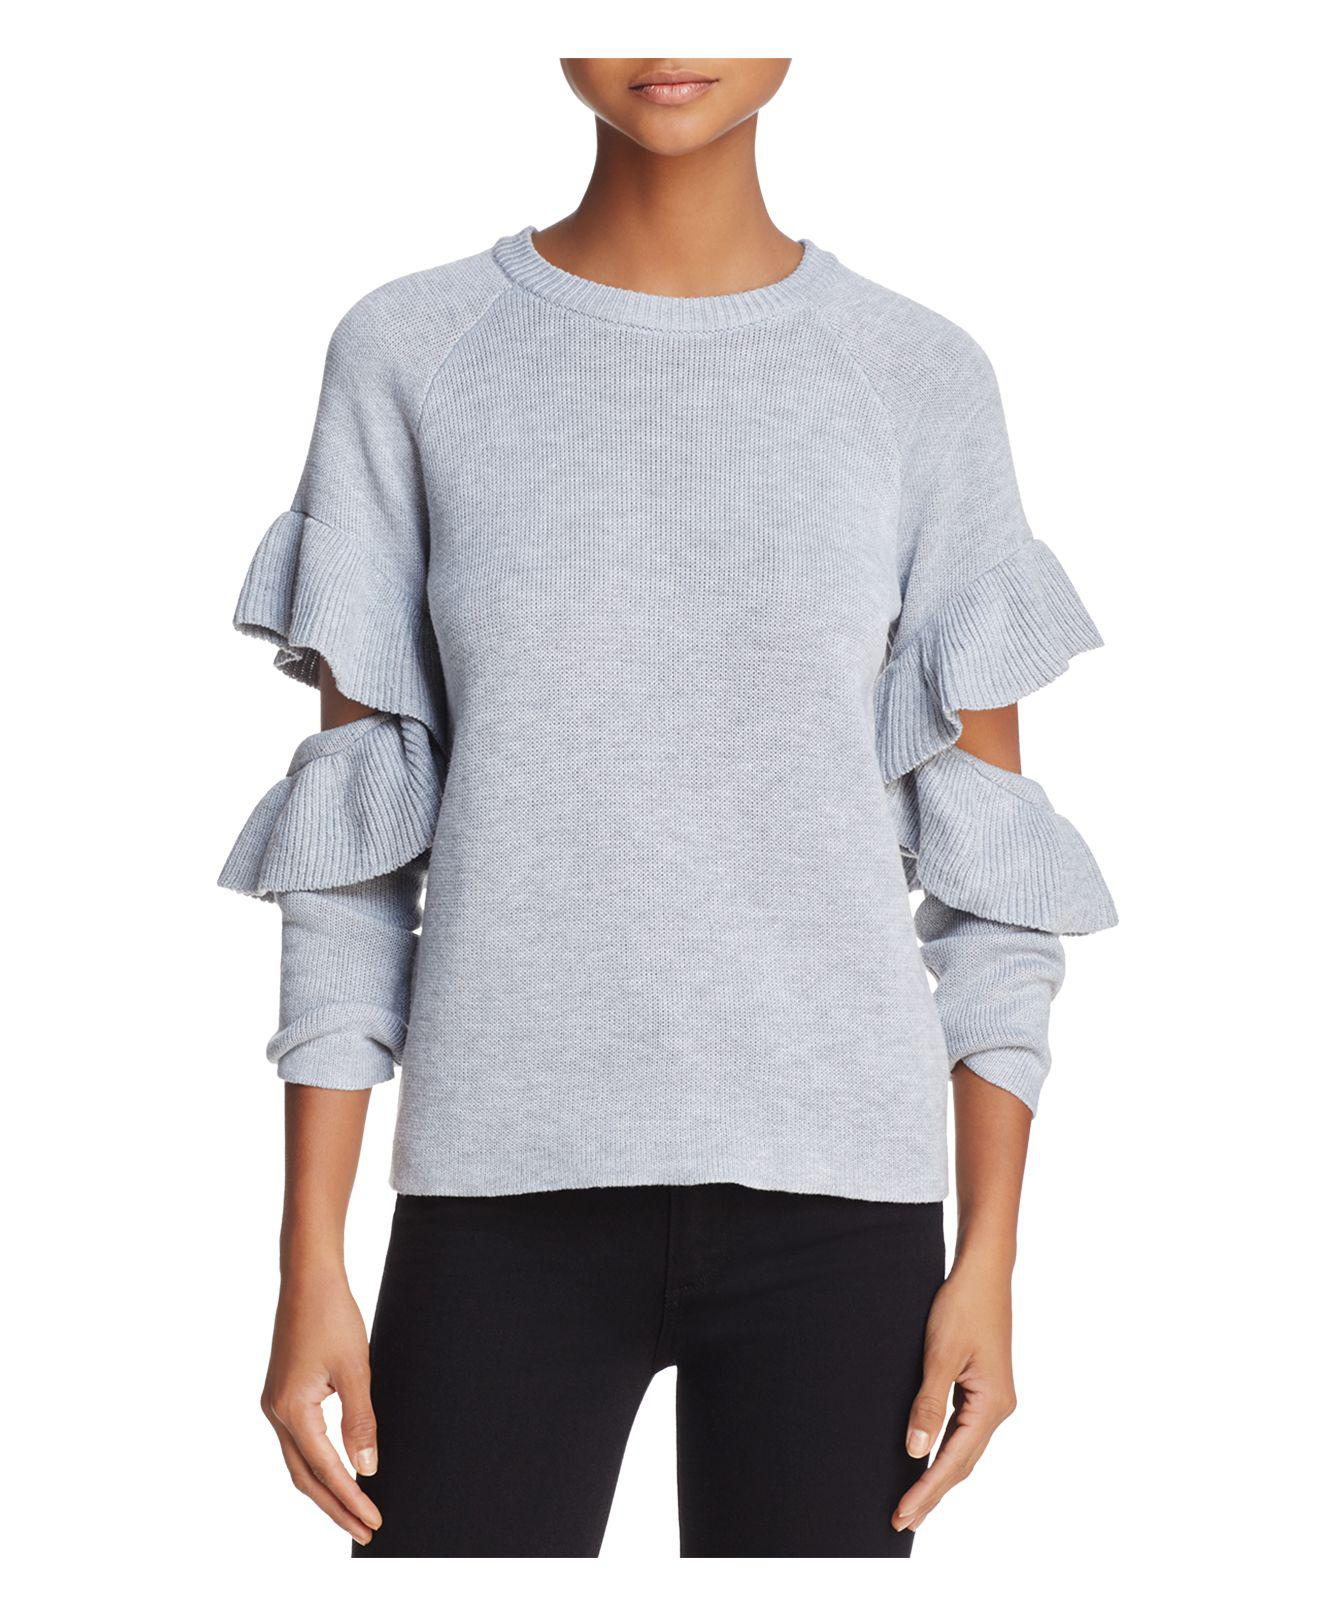 870d8068111755 Endless Rose Ruffled Cutout Sweater in Gray - Lyst